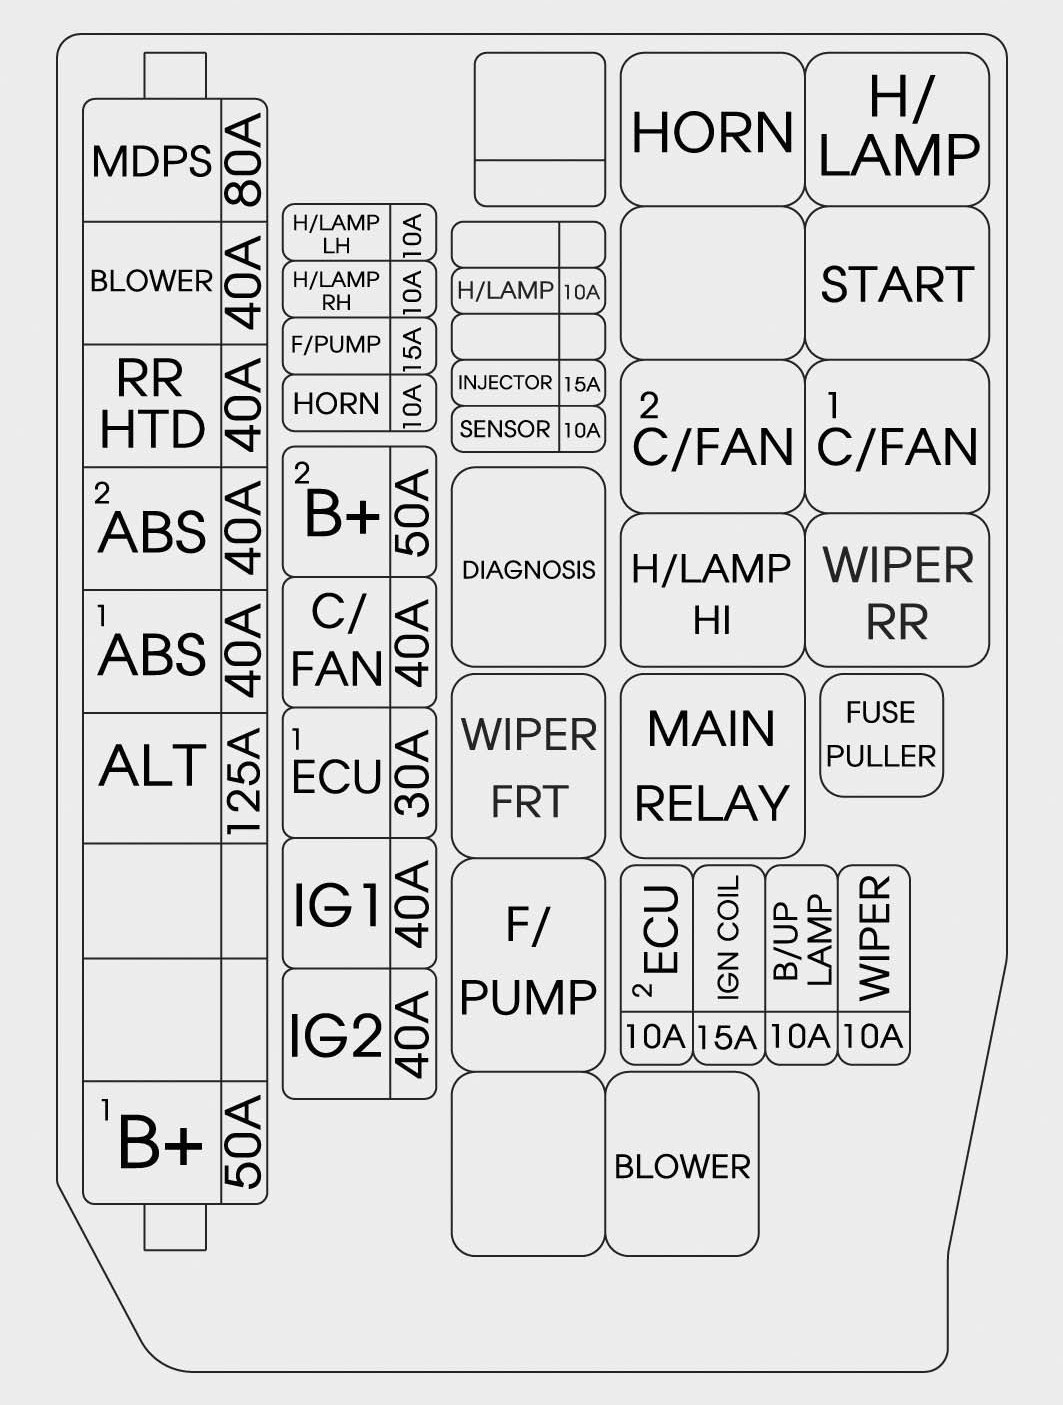 hight resolution of 2013 hyundai fuse box wiring diagram 2014 elantra fuse diagram 2013 hyundai fuse box wiring diagram